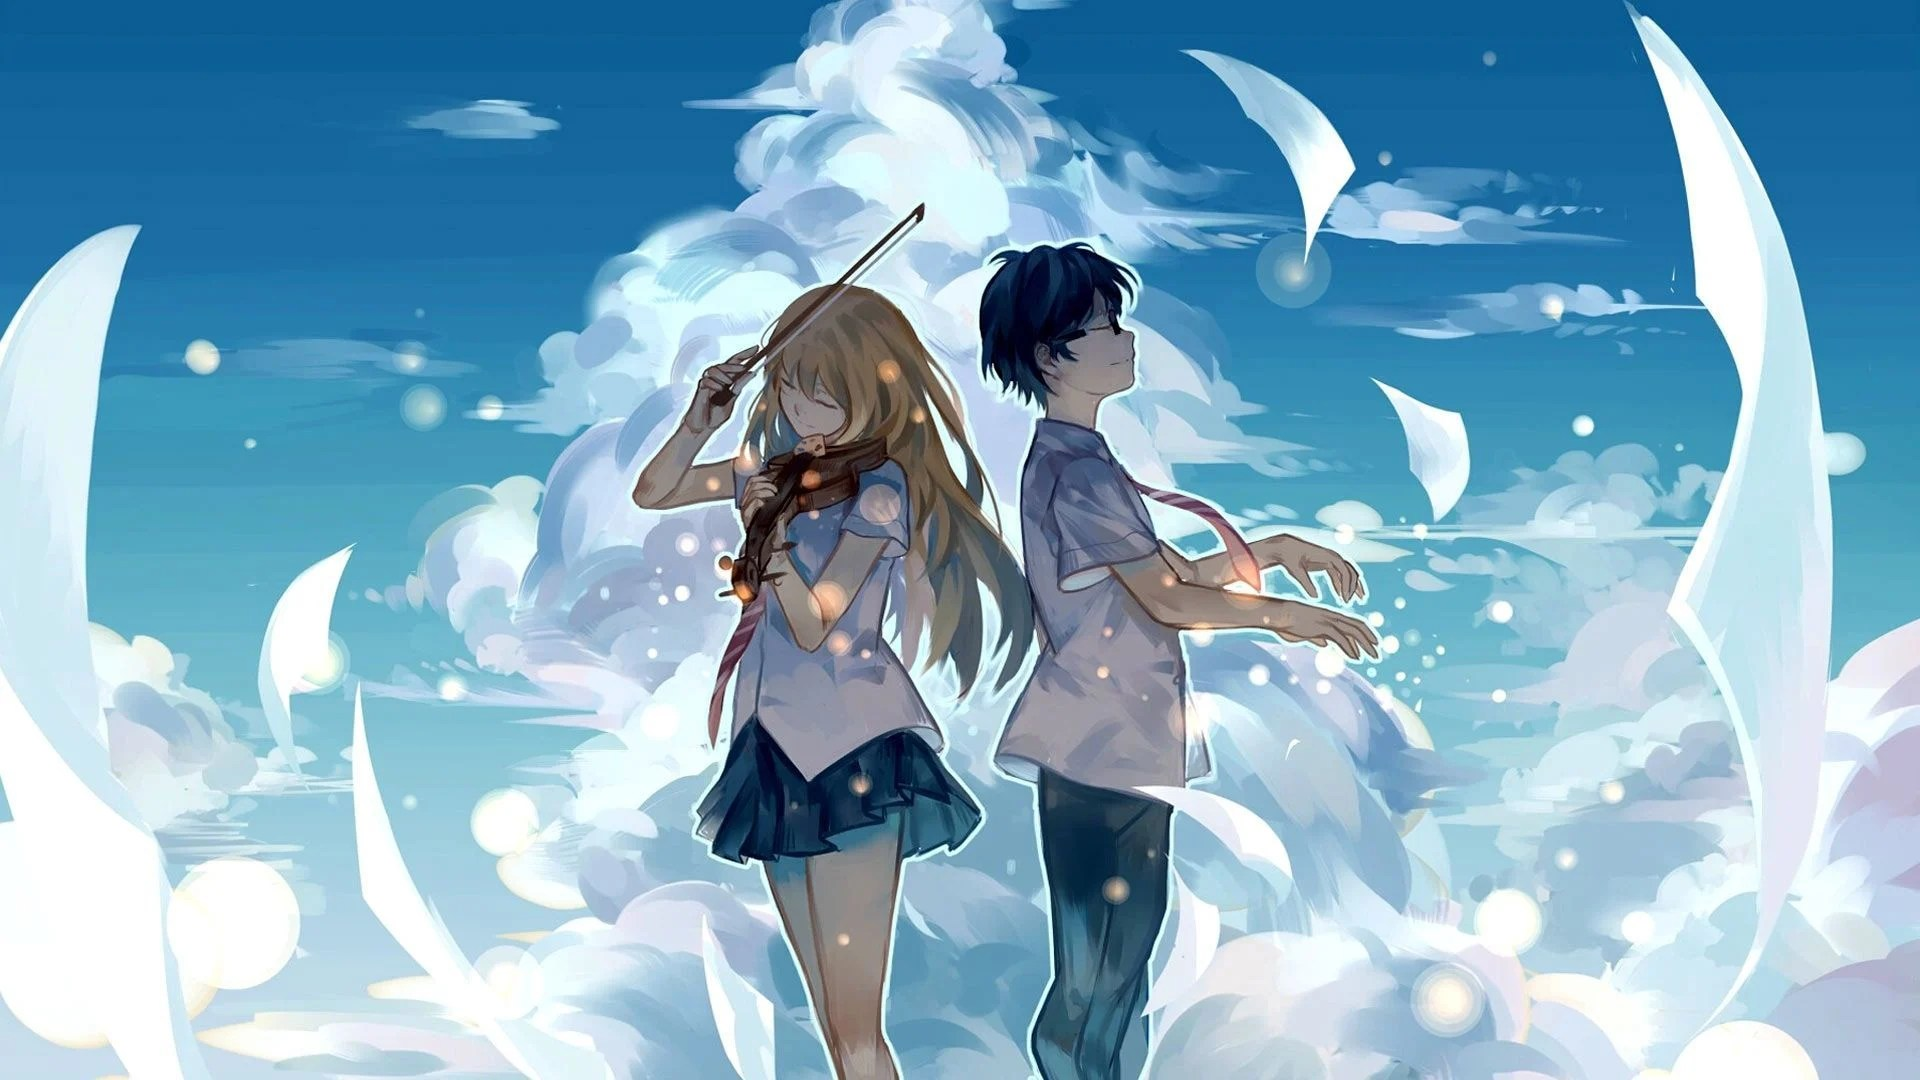 High Def Anime Wallpapers Top Free High Def Anime Backgrounds Wallpaperaccess